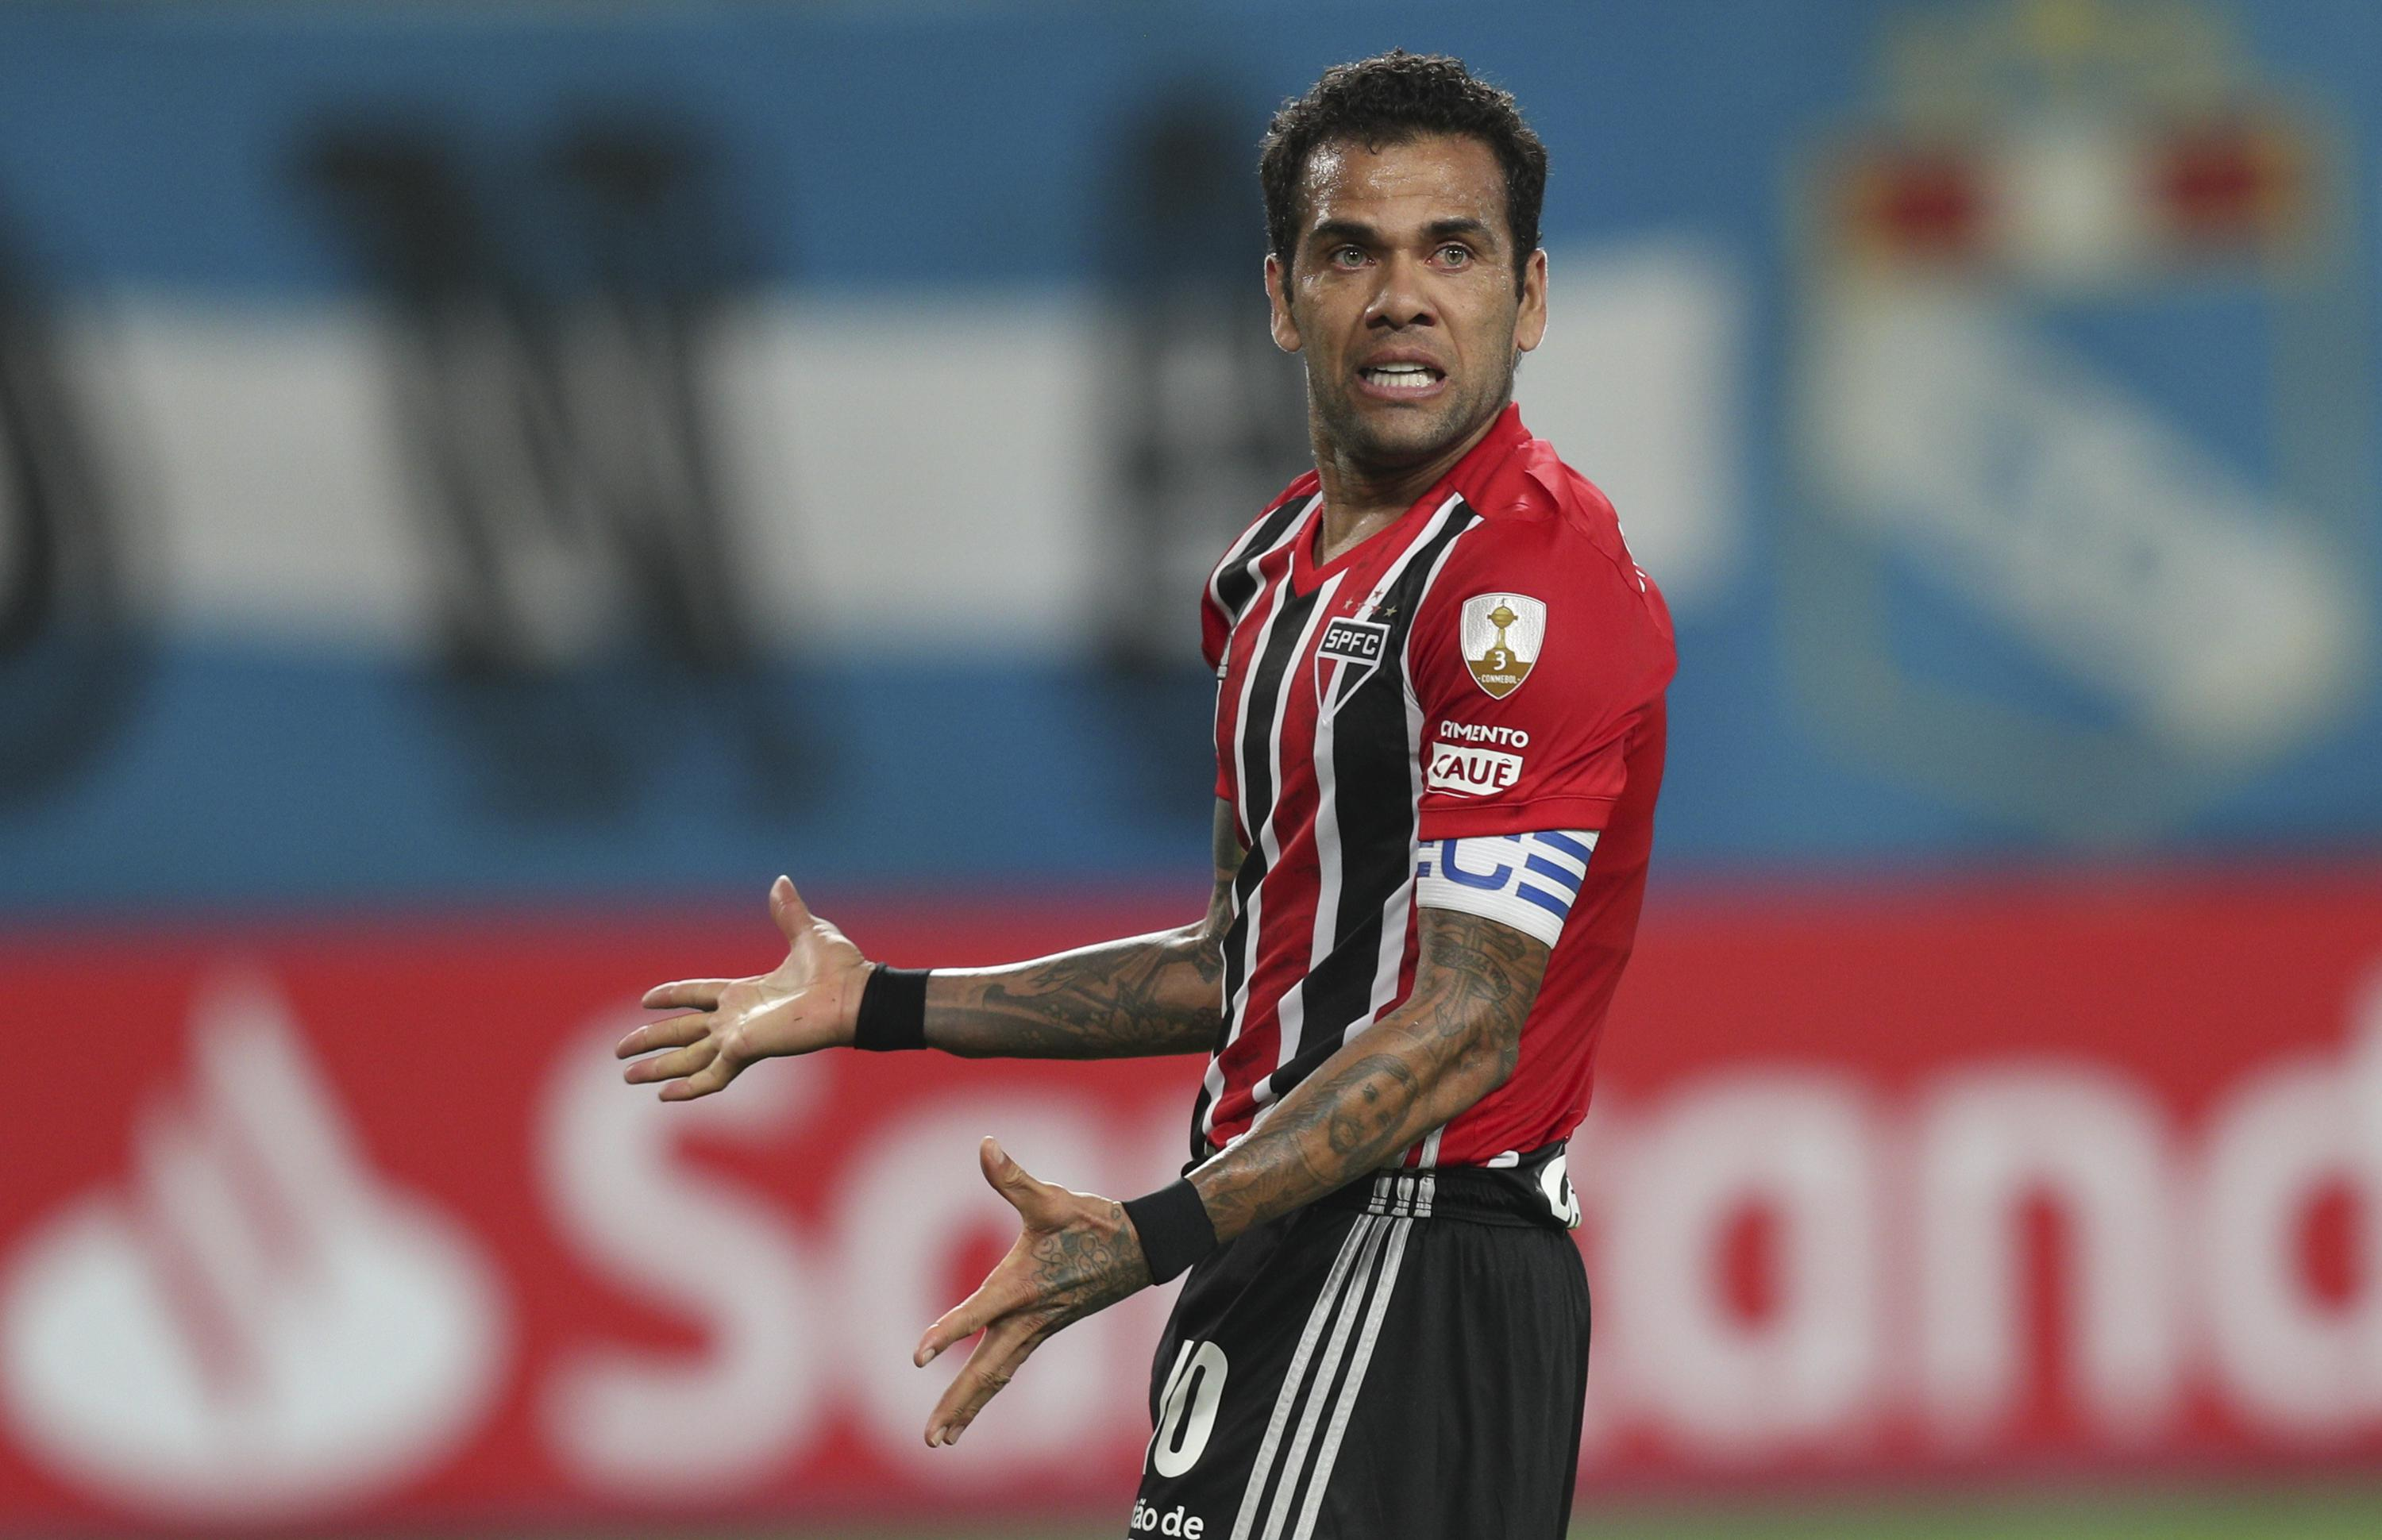 Alves and Silva back for Brazil in World Cup qualifying